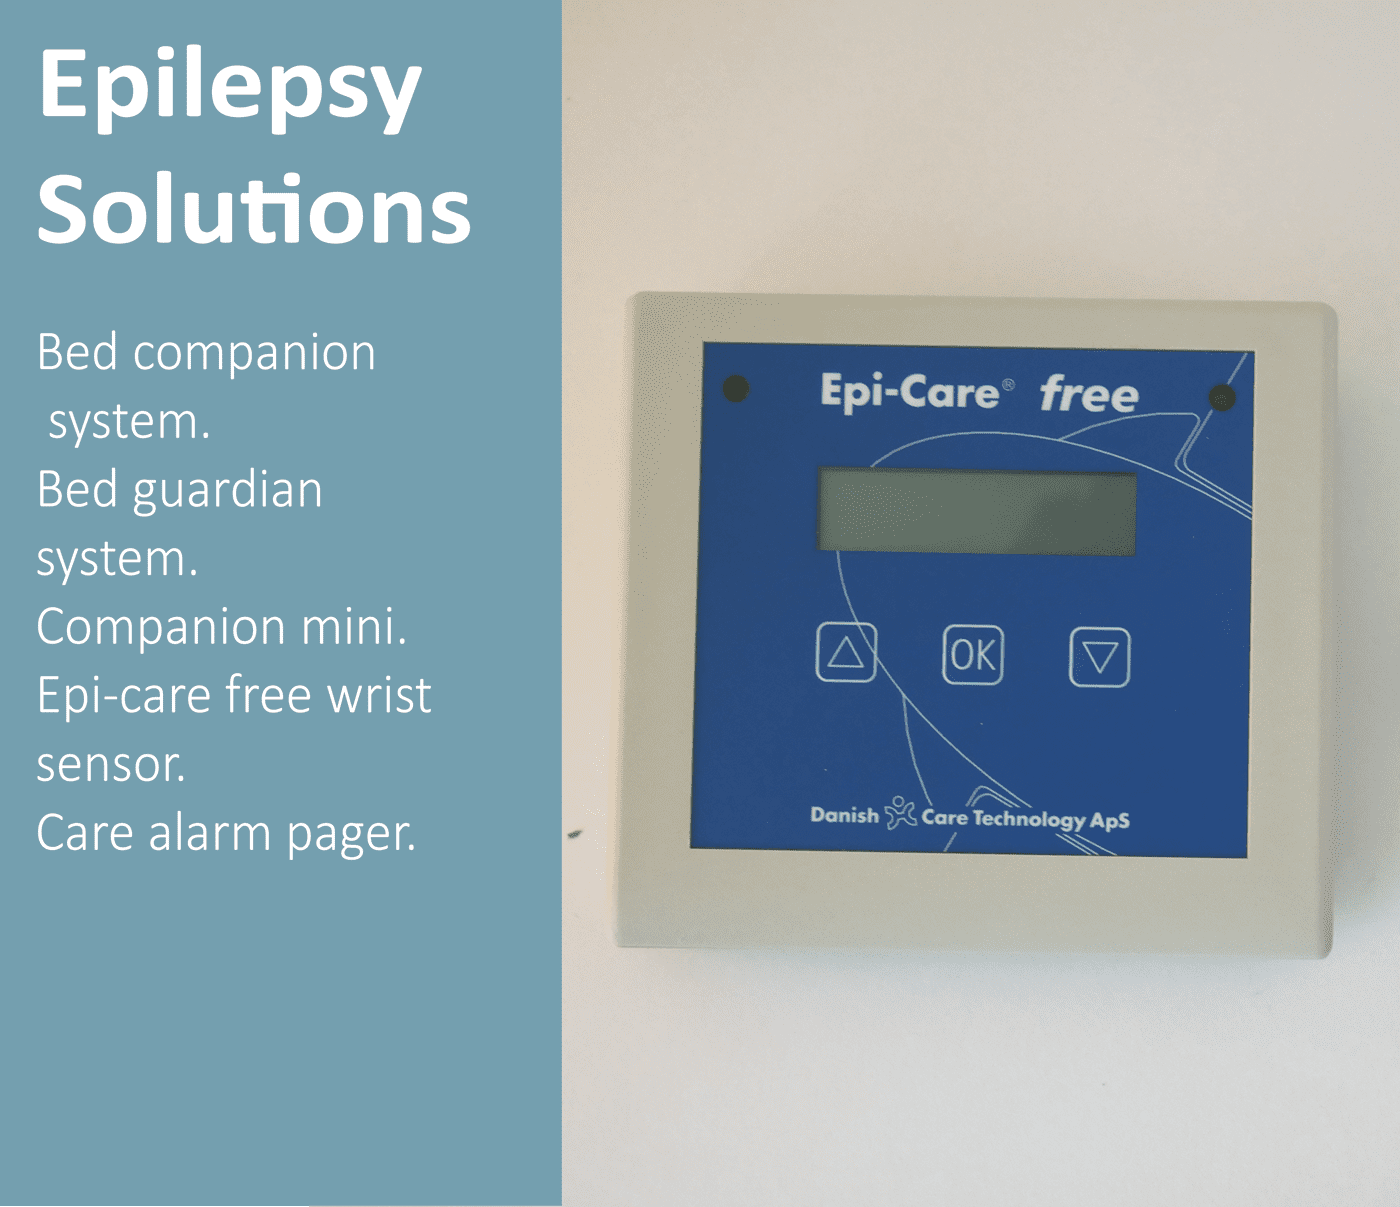 epilepsy-solutions